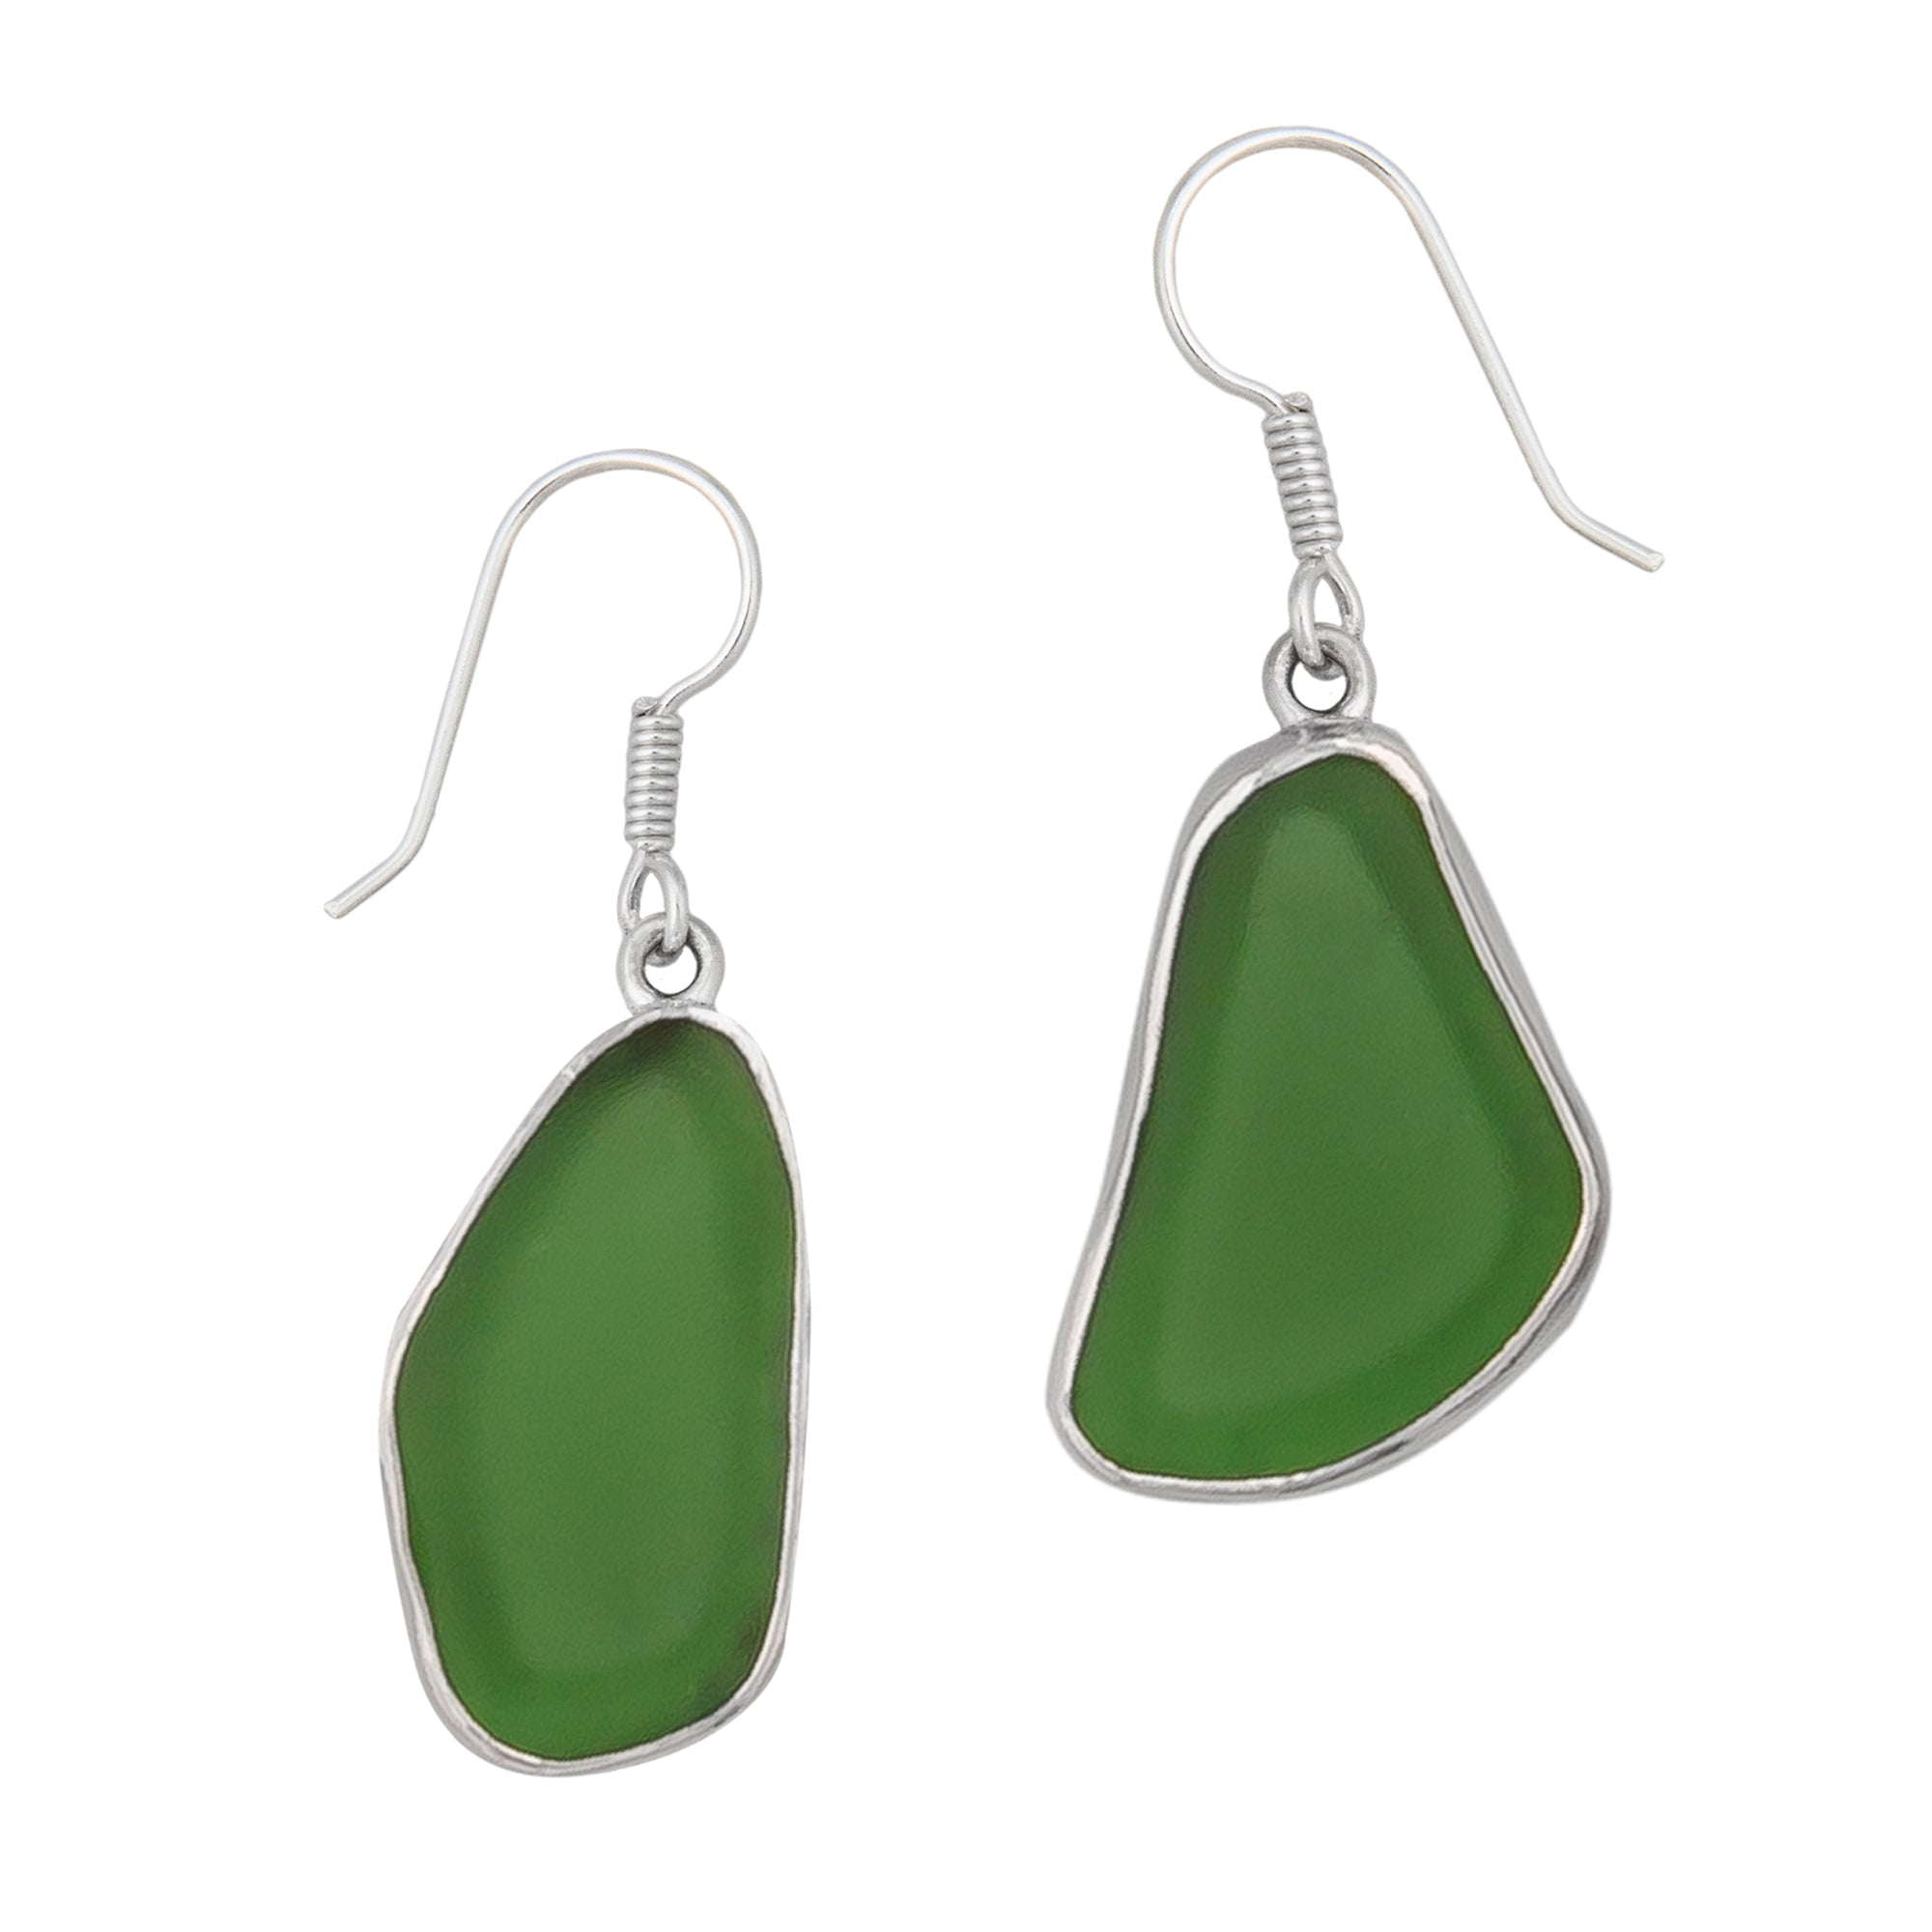 sterling-silver-green-recycled-glass-earrings - 1 - Charles Albert Inc